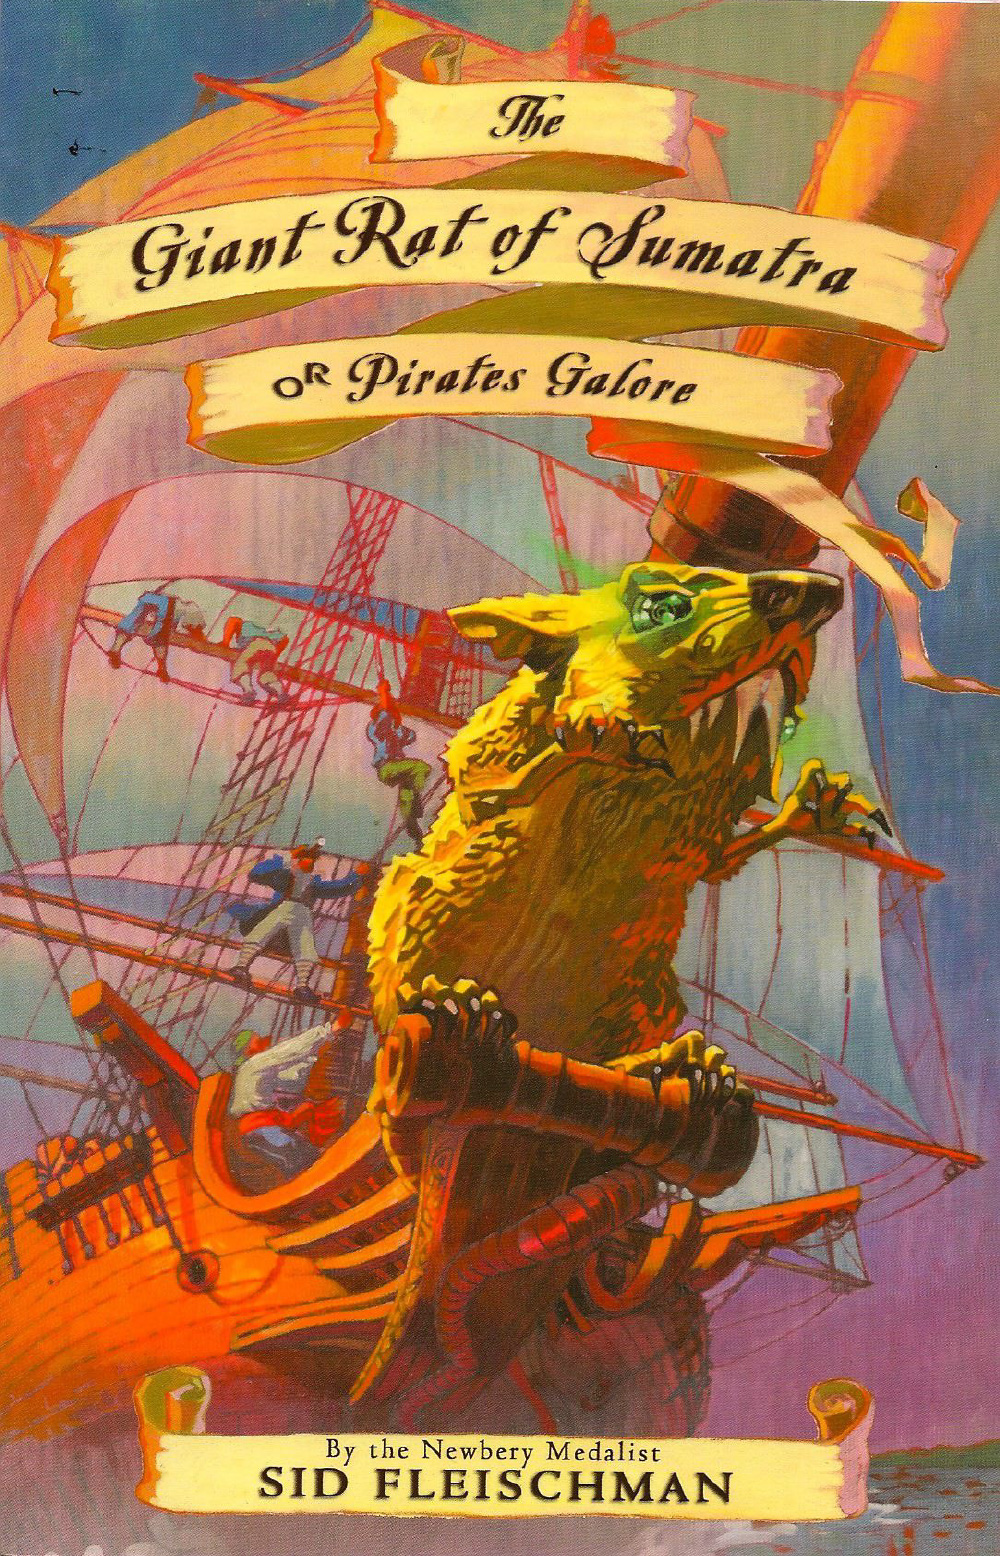 The Giant Rat of Sumatra - Pirates, bandits, romance and revenge, all set in the lively rancho world of San Diego during the period of the war with Mexico.